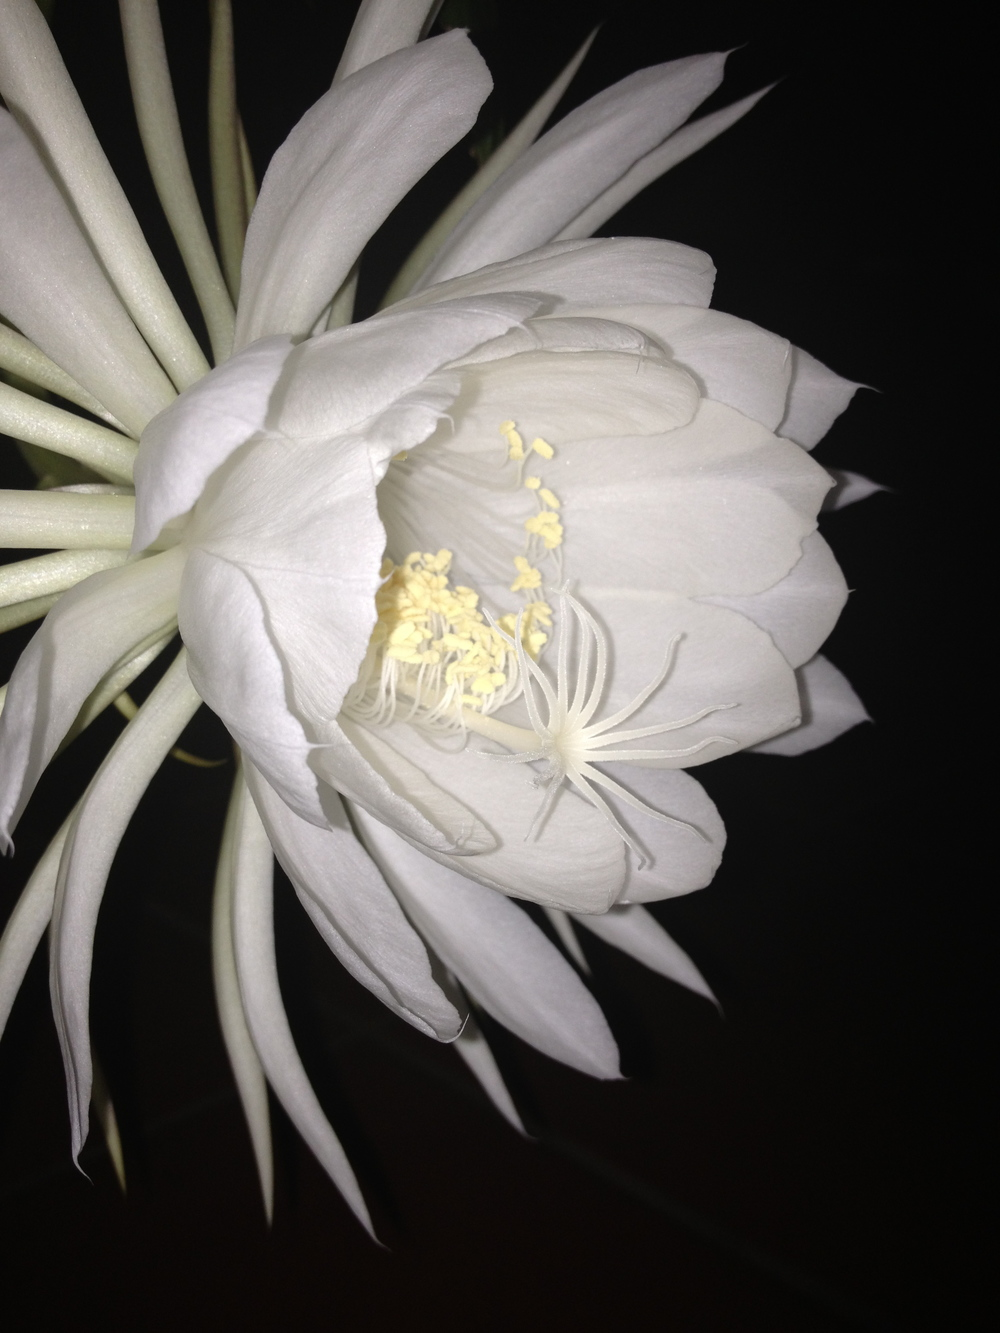 Botanical genus-epiphyllum oxypetallum, night blooming cereus